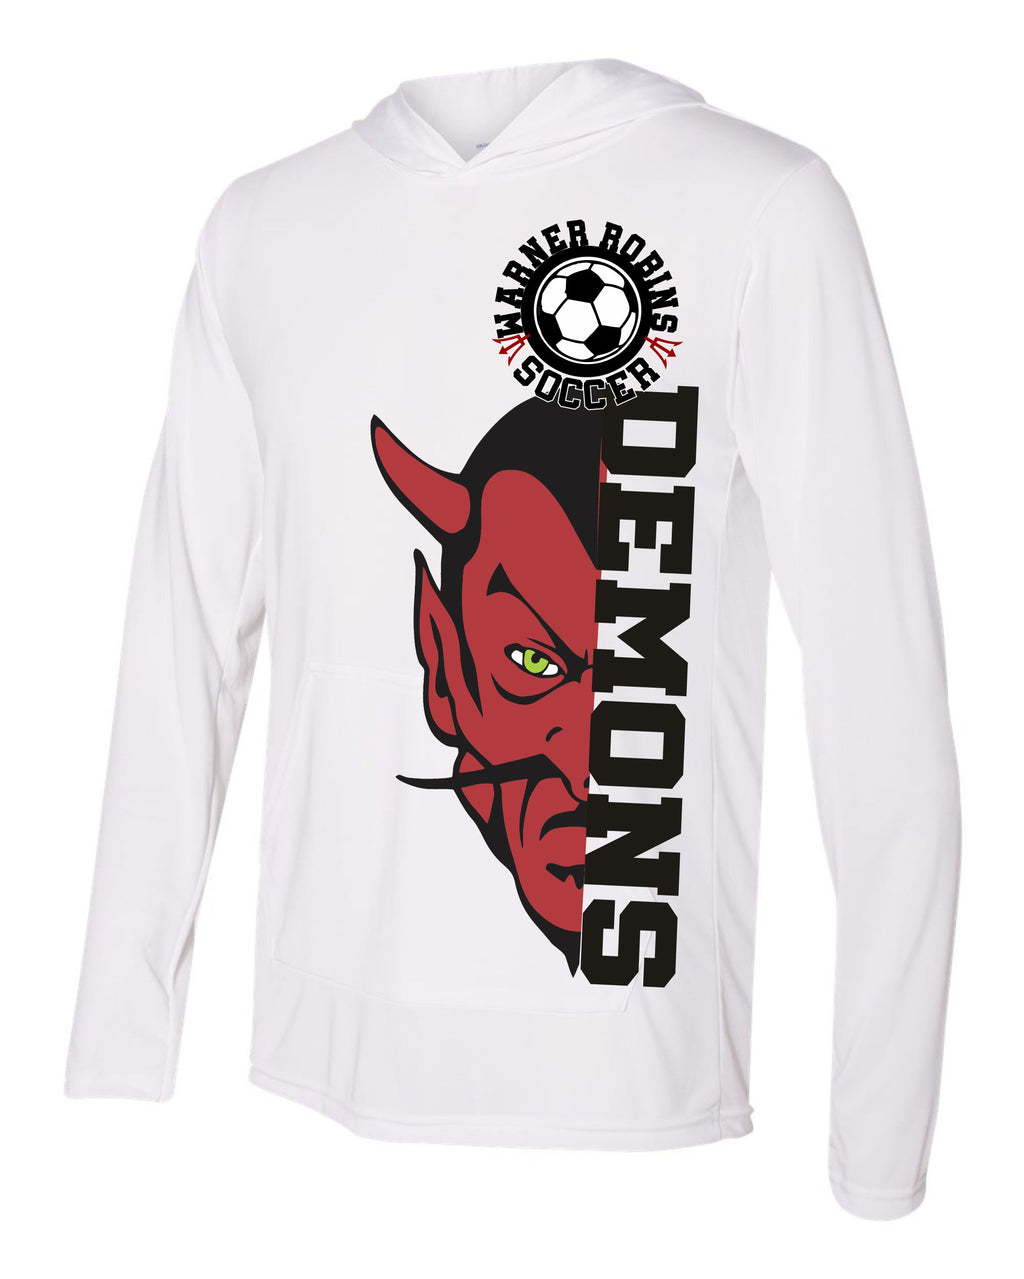 performance hoodie, demon graphic warner robins demons soccer